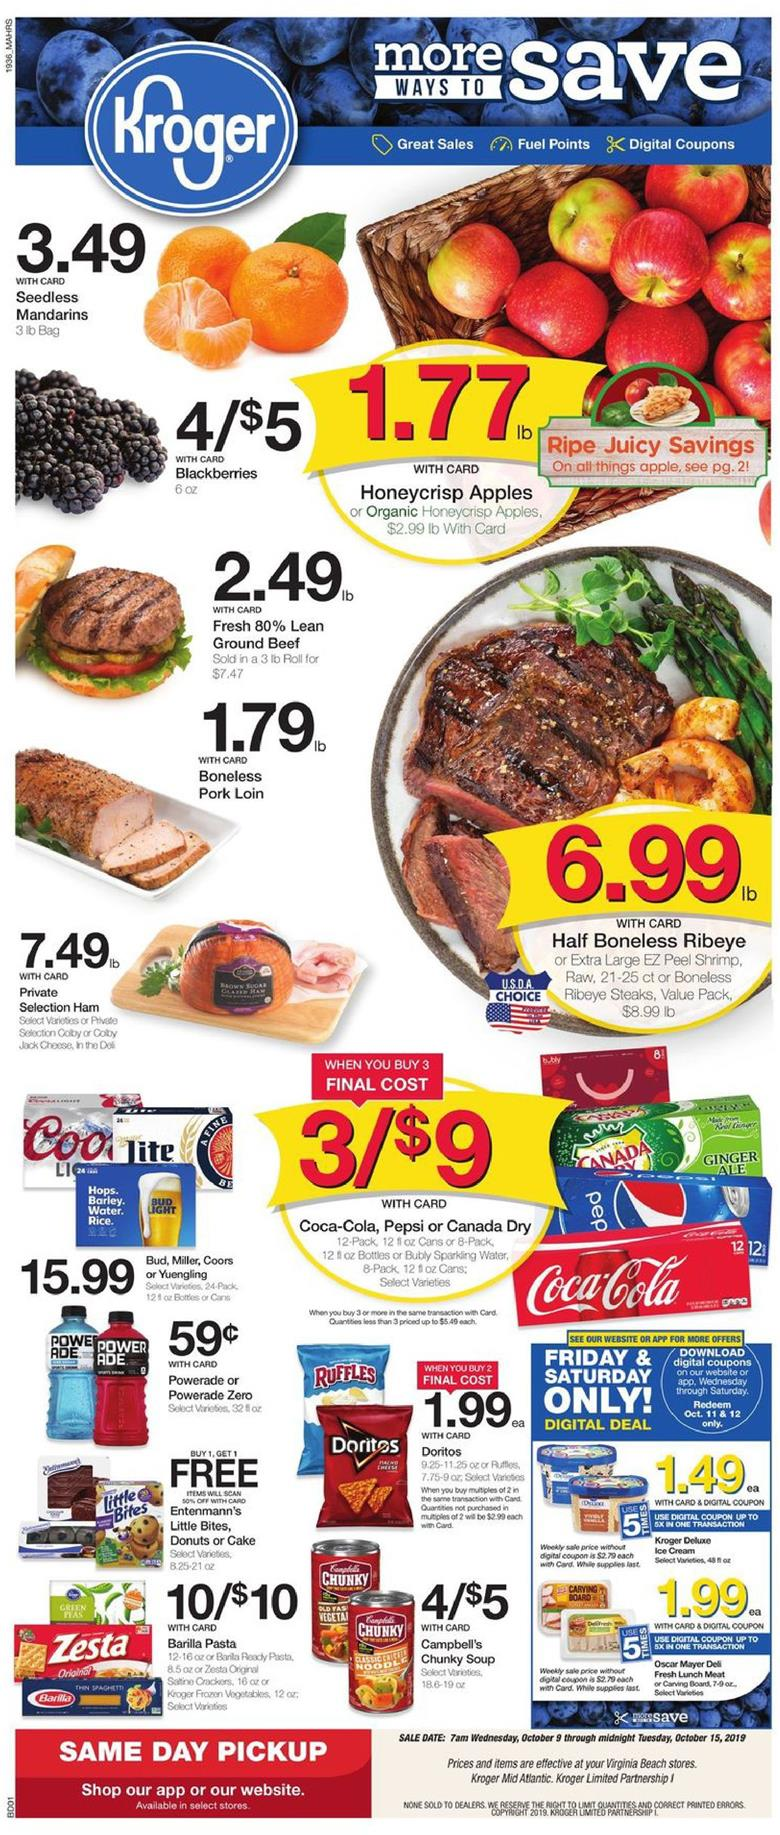 kroger weekly ad oct 9 2019